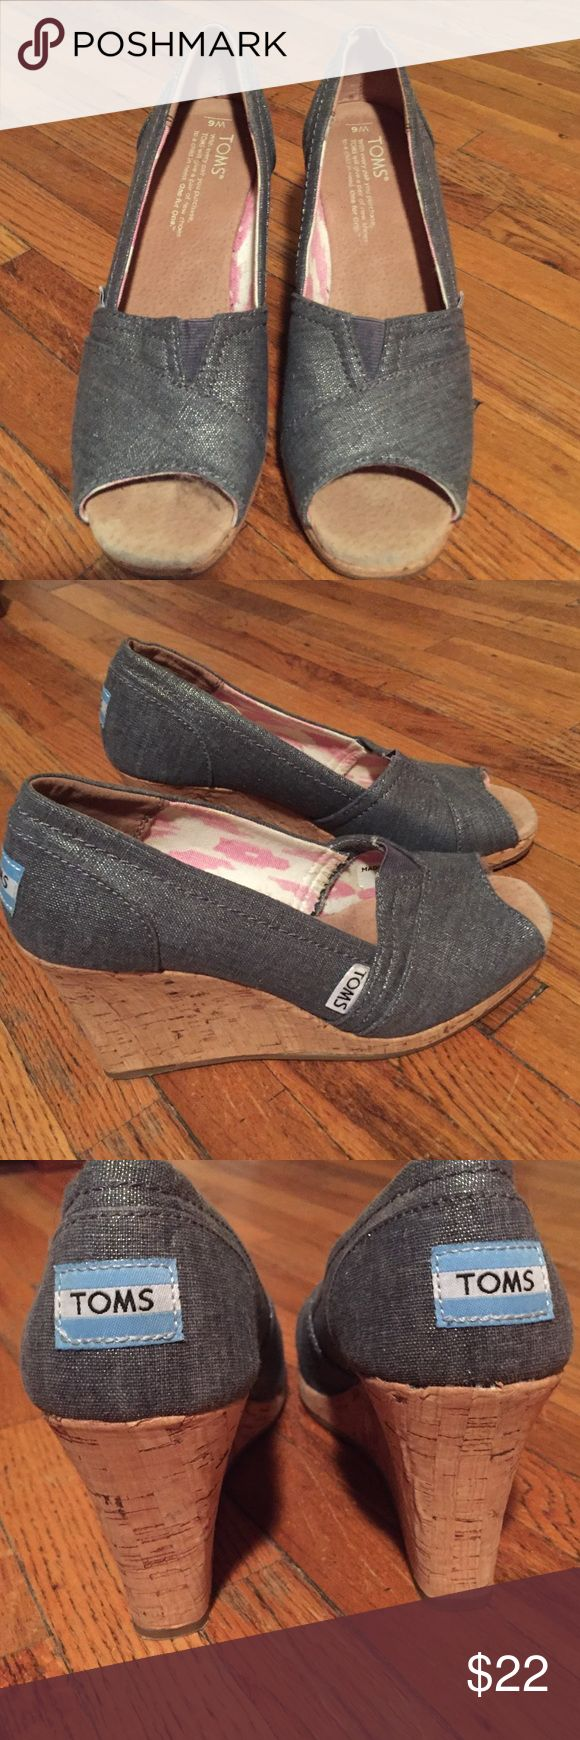 Tom's wedge shoe - like new- size 6 Toms wedge, size 6. Great pre loved condition. Metallic denim look fabric. Small elastic in the front. Most comfortable wedges ever. TOMS Shoes Wedges